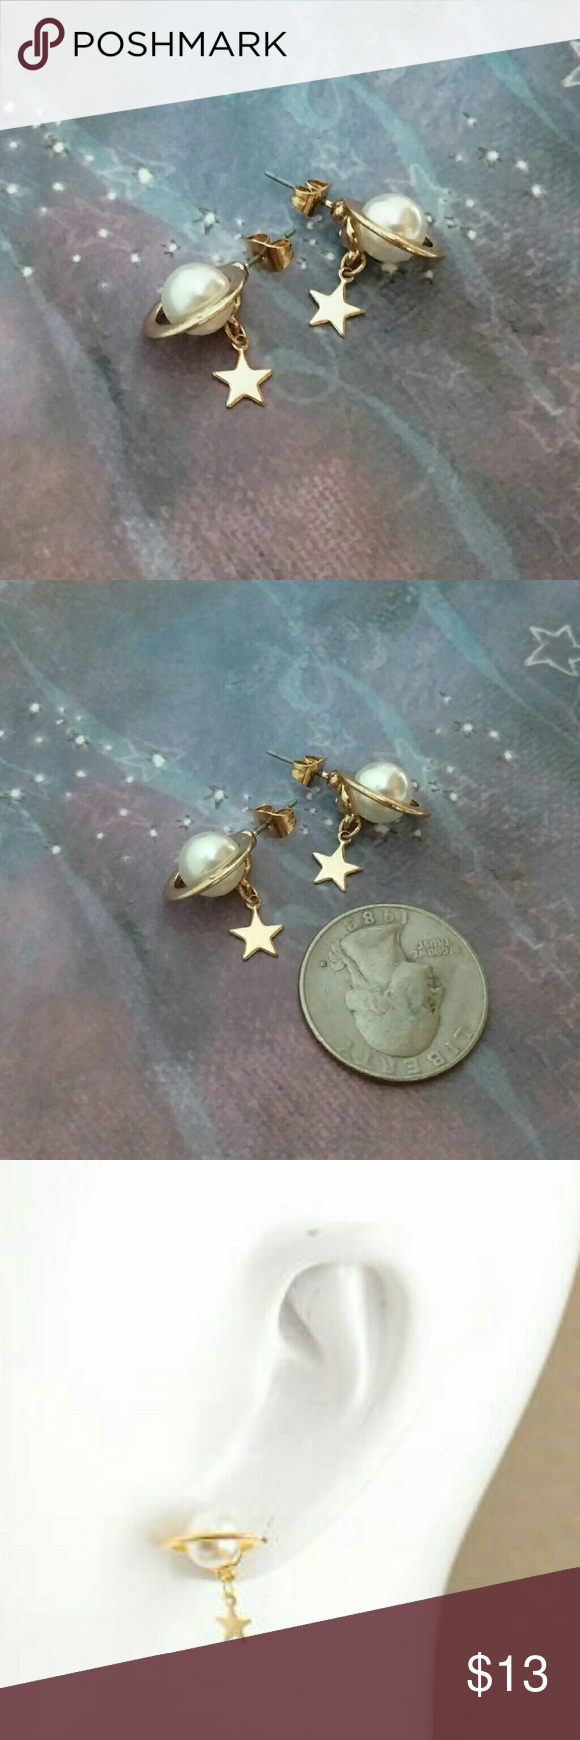 New stud earrings planet star galaxy universe cute New outta this world universe stud earrings Gold tone Cute little planet and a dangling star Have the galaxies just dangling from your ears! Jewelry Earrings